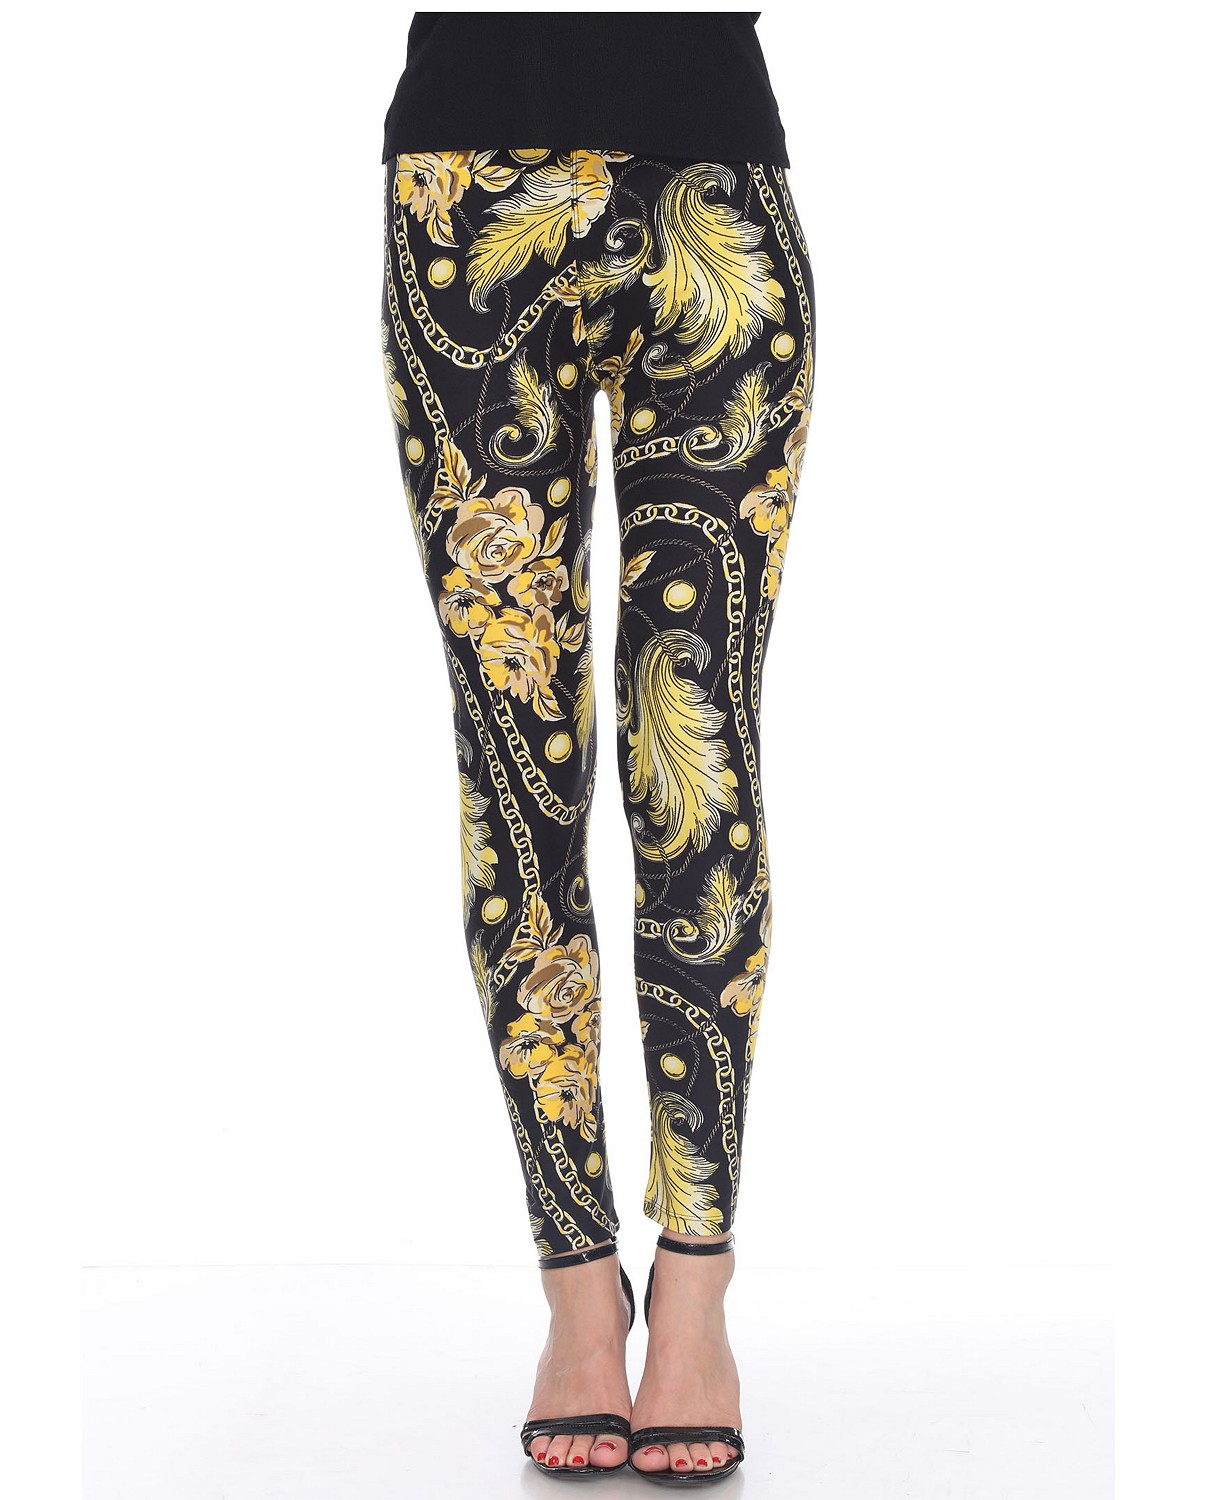 (30% OFF Deal) Women's One Size Fits Most Printed Leggings $9.80